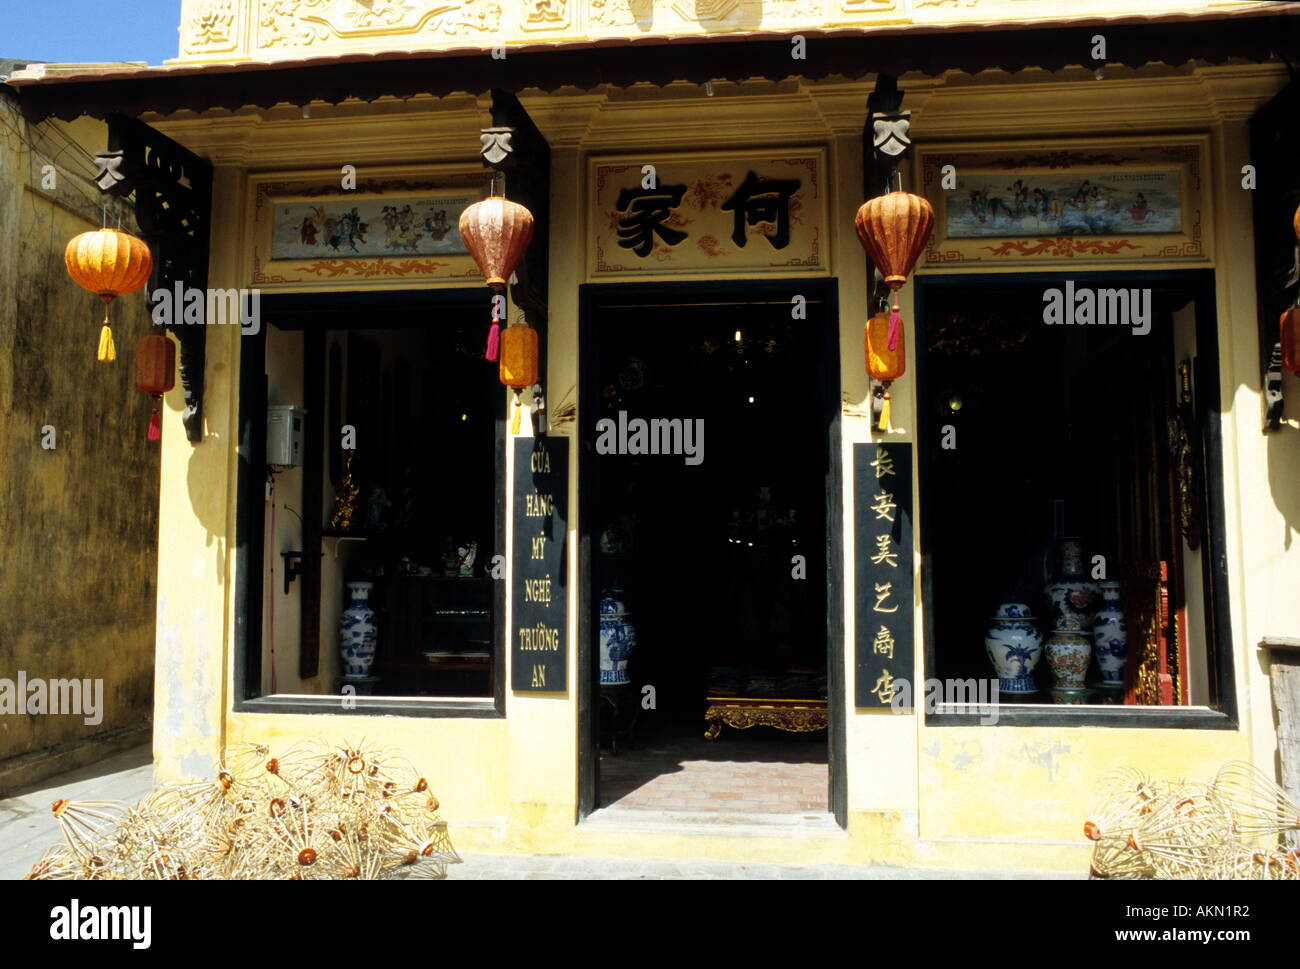 Traditional shophouse in Tran Phu St, Hoi An, Viet Nam - Stock Image